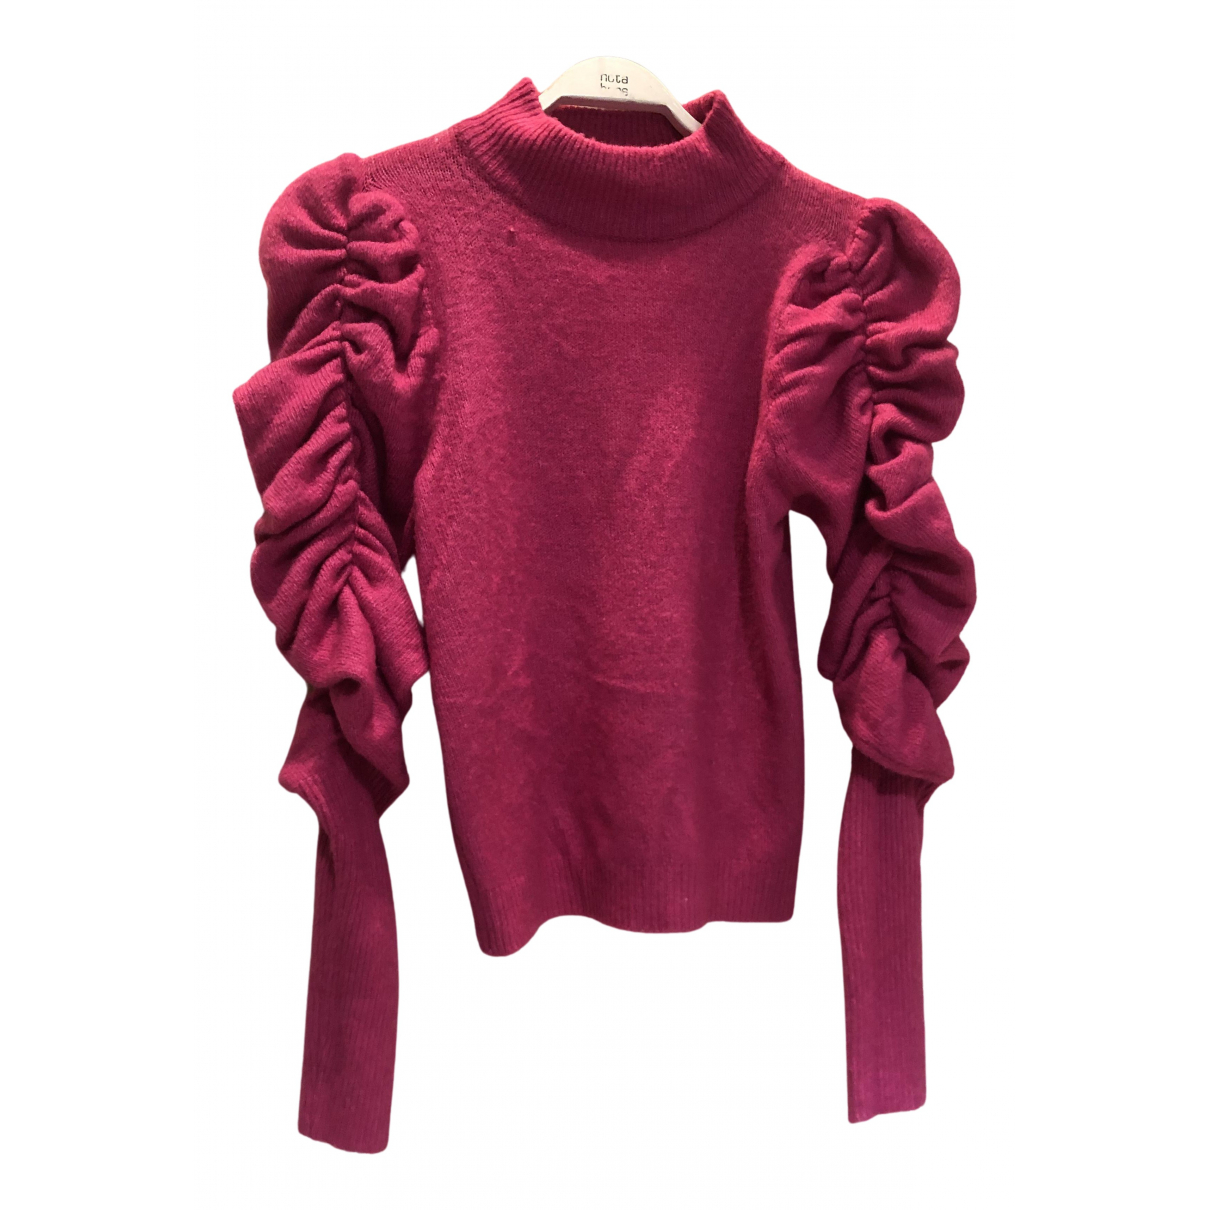 Non Signé / Unsigned N Pink Knitwear for Women One Size IT